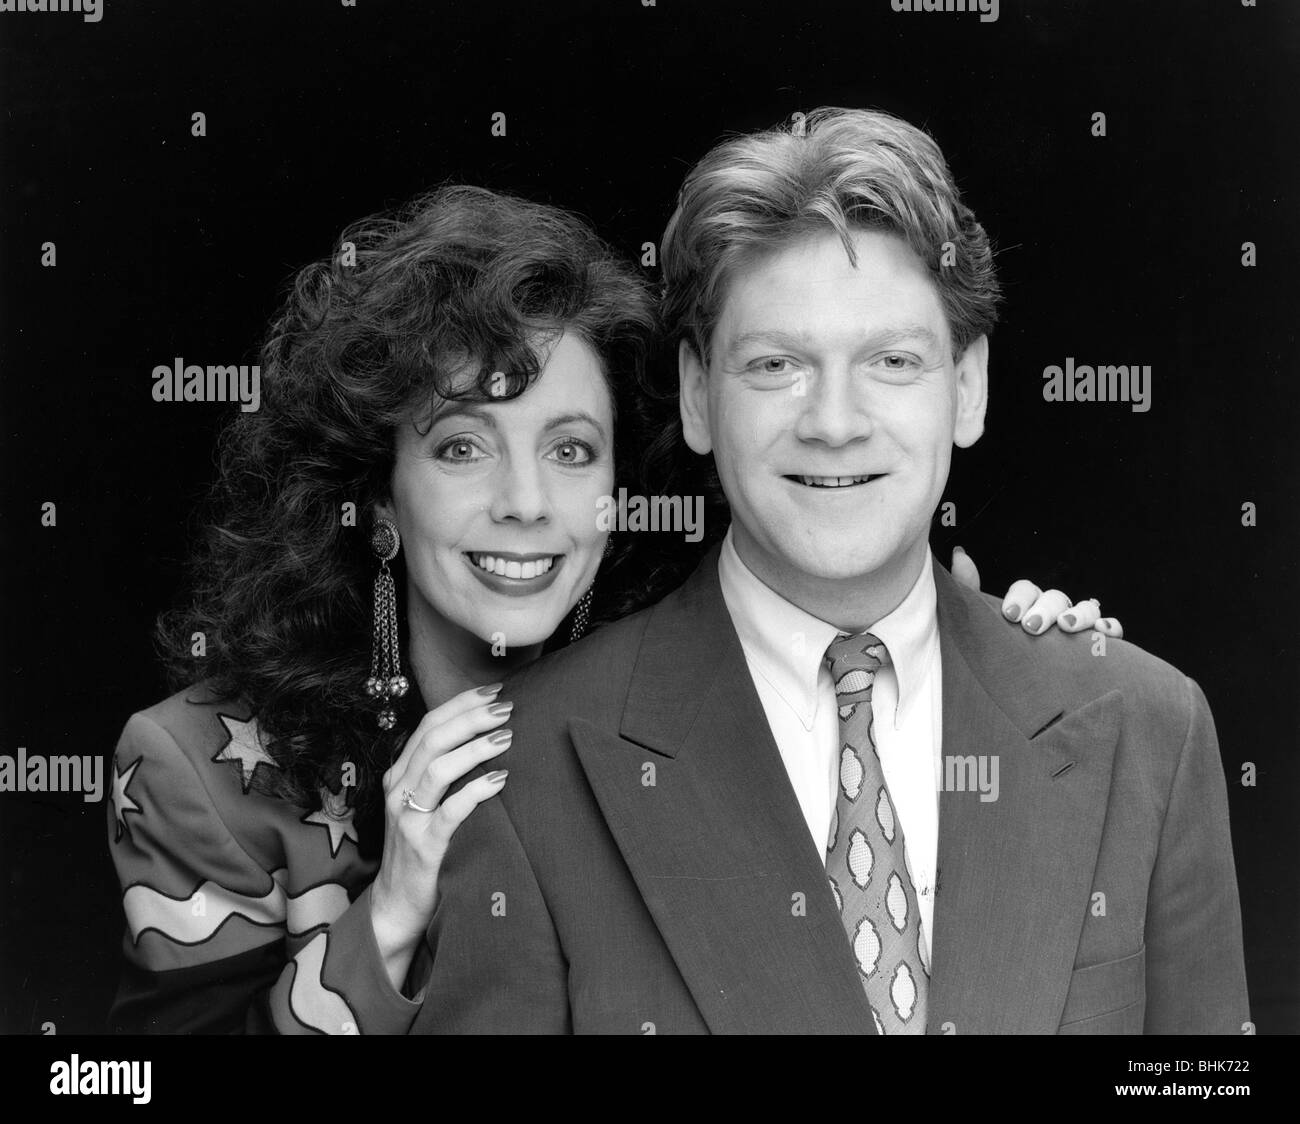 Kenneth Branagh (1960- ), British actor, with Rita Rudner (1956- ), American actress, 1991. Stock Photo